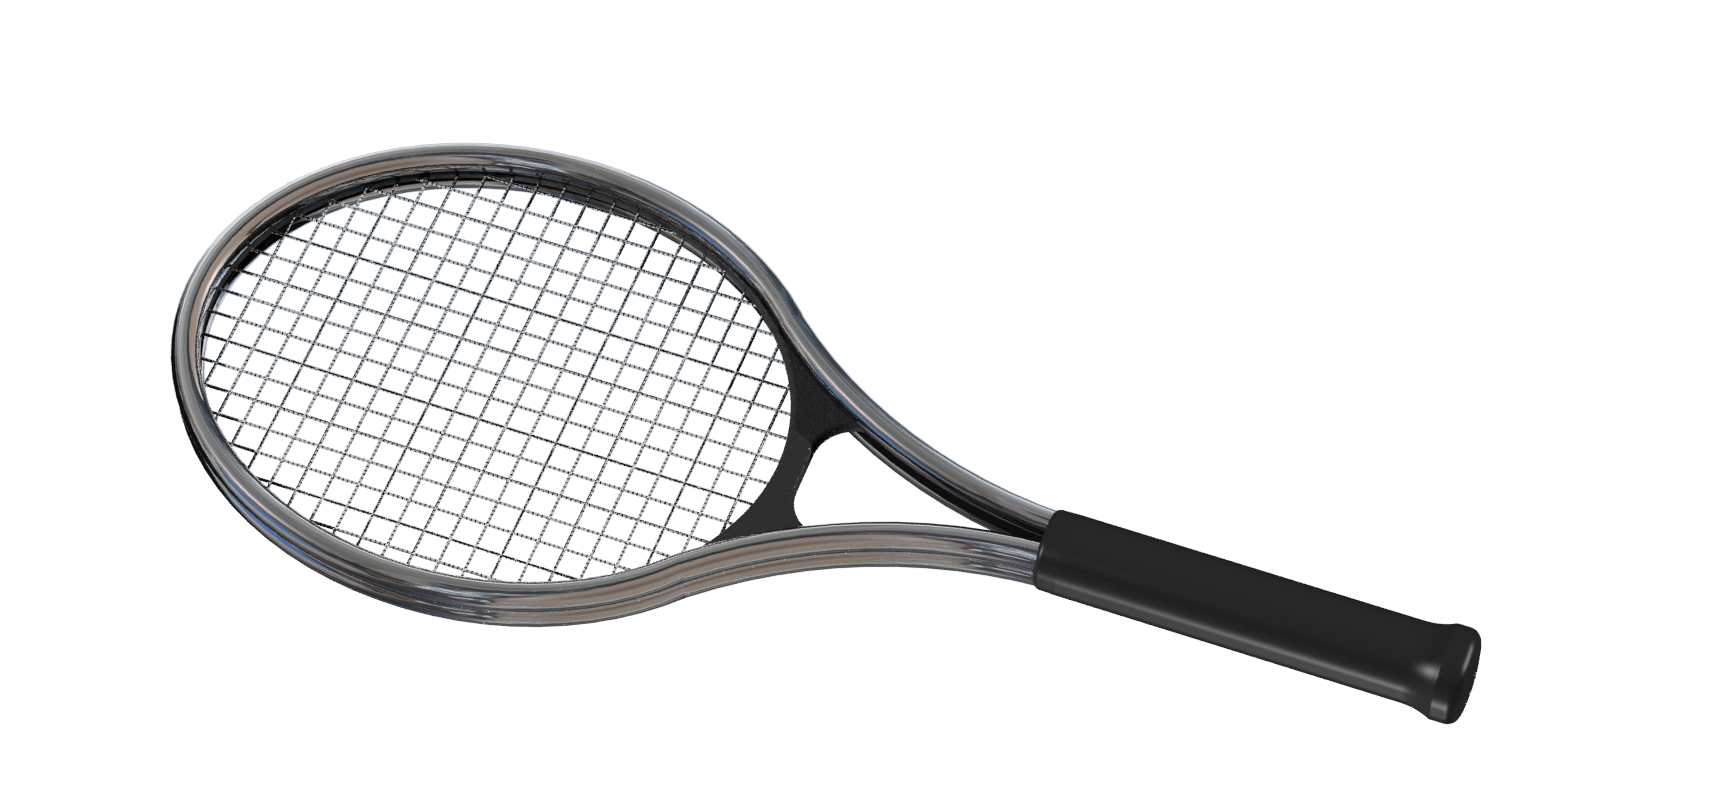 Clipart tennis racket with money jpg black and white library Tennis PNG images free download, tennis ball racket PNG jpg black and white library